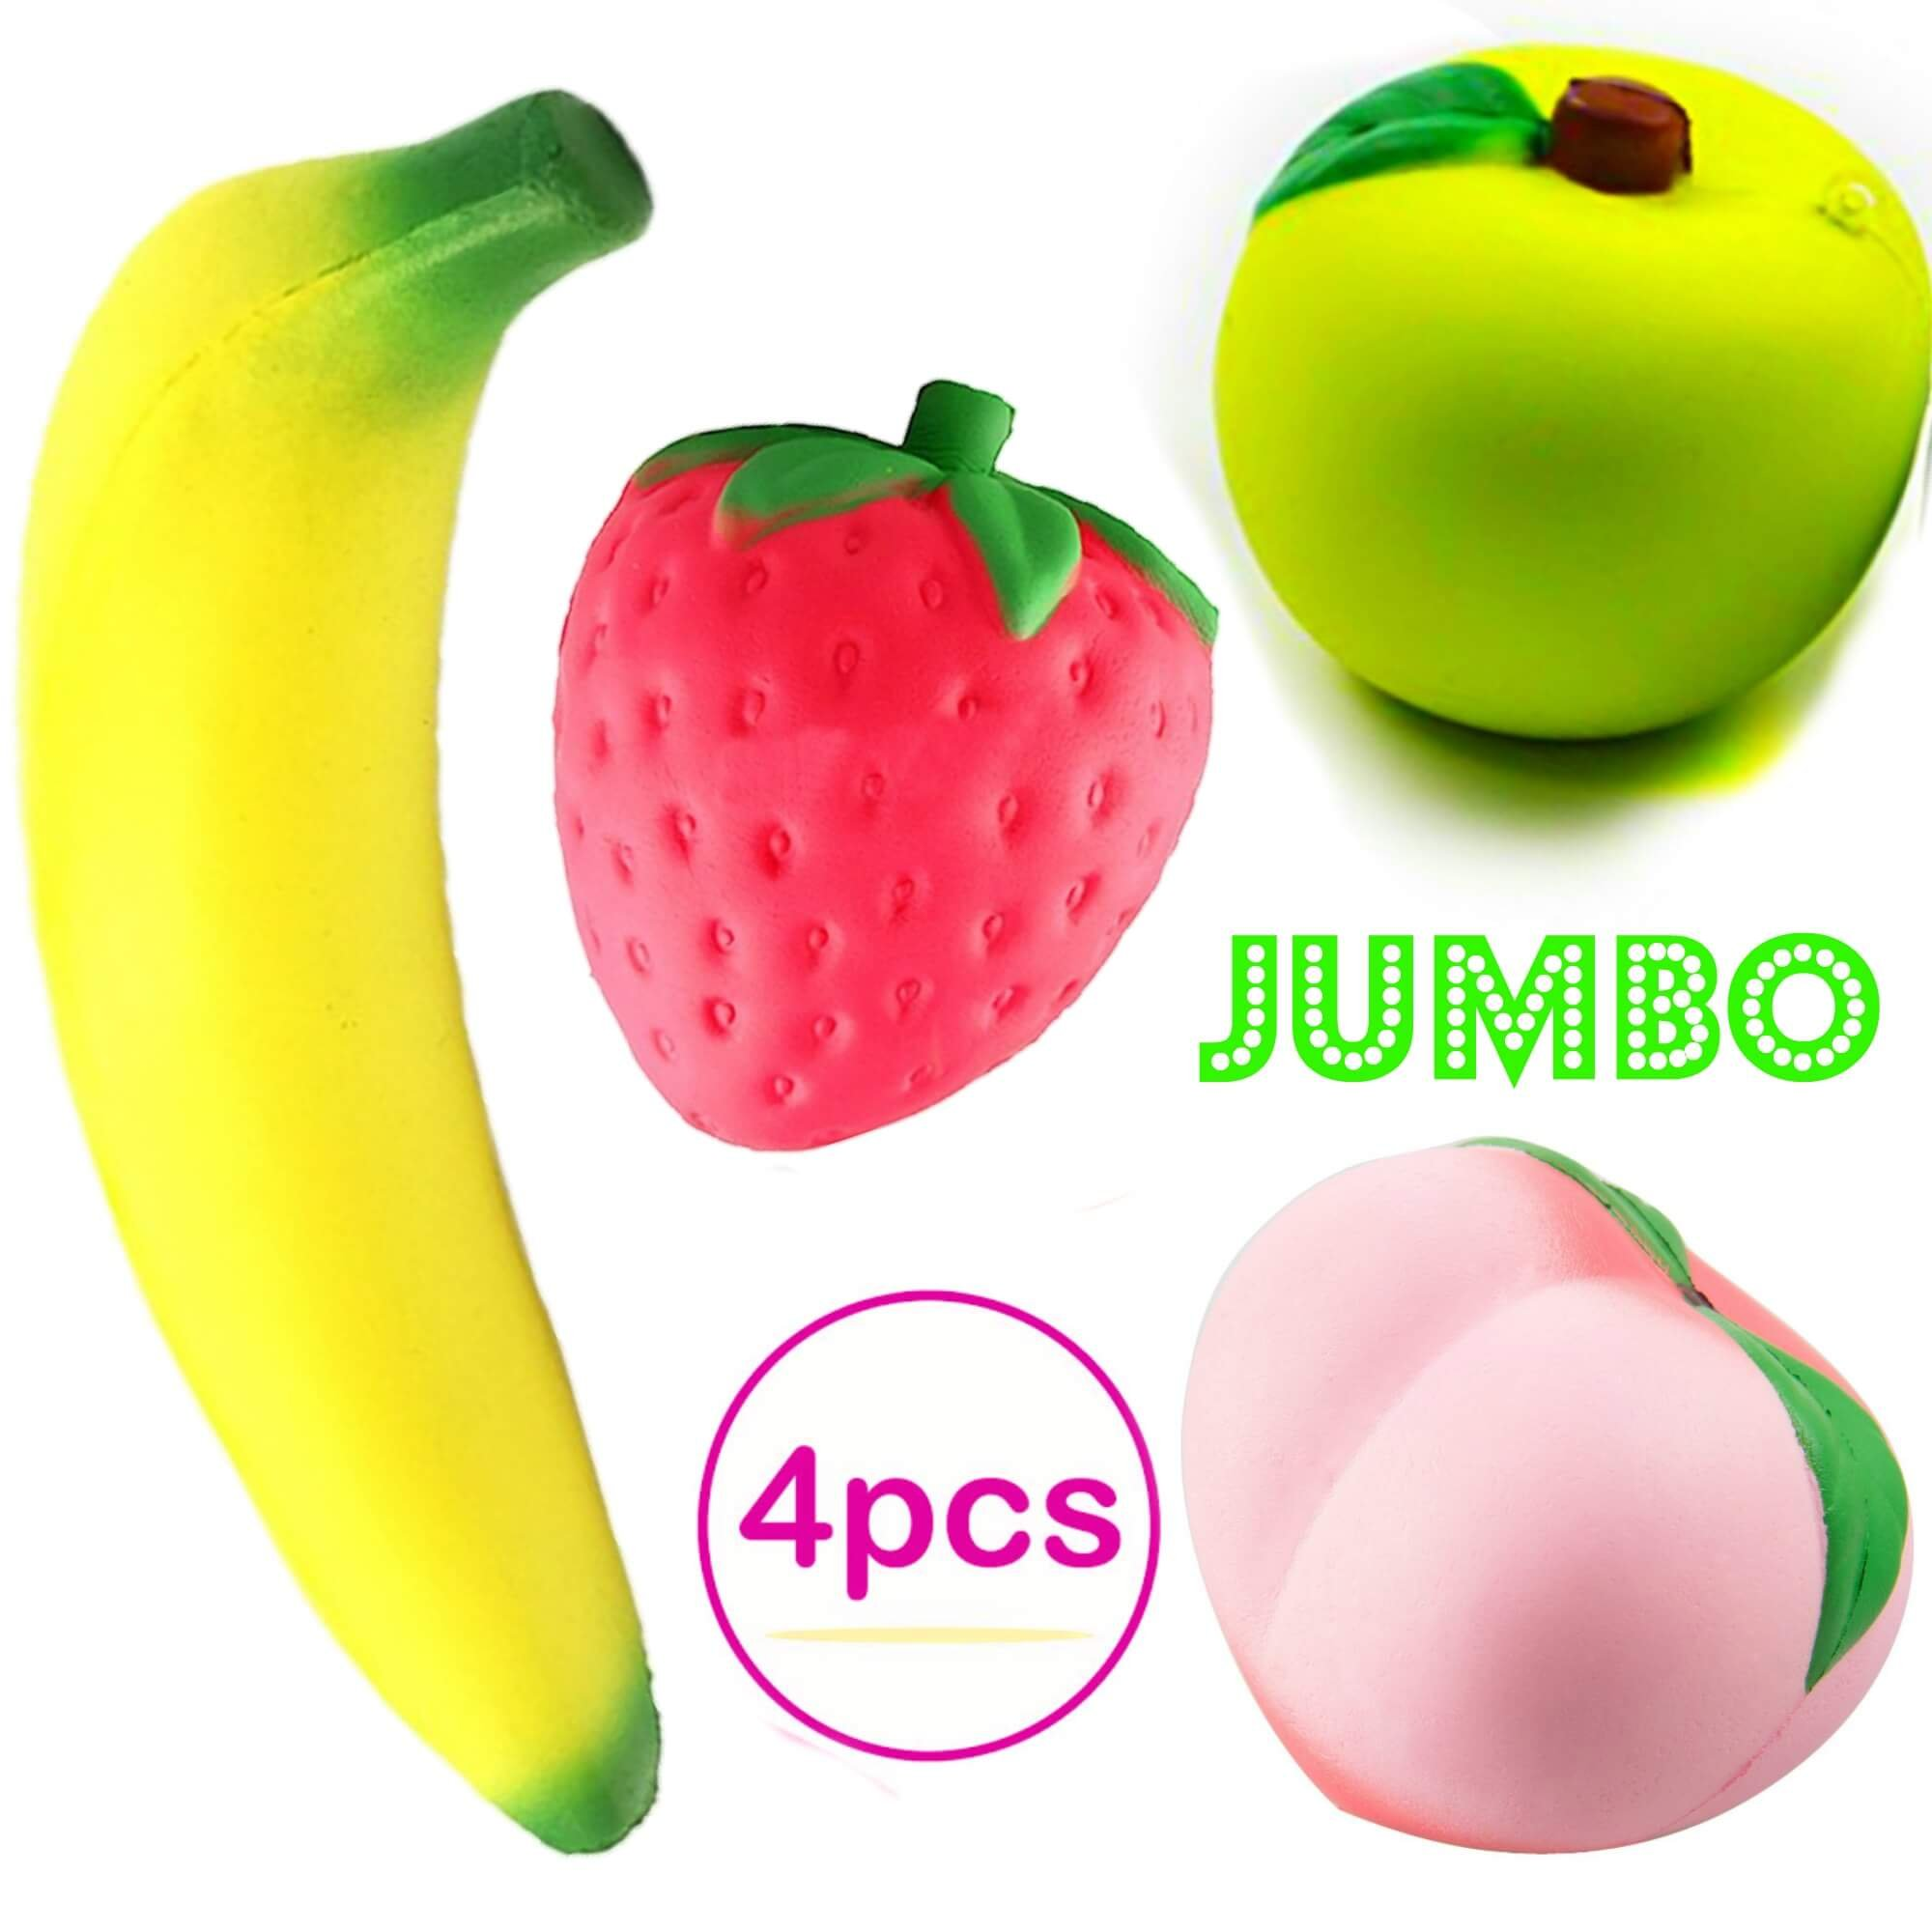 Squishies Slow Rising Jumbo Fruit - Prime 4 Pack Kawaii Squishy Toys Package Strawberry Peach Banana Apple Giant Scented Fruit Pack Cute Squishys Super Soft Stress Relief GIFT For Kids & Adults